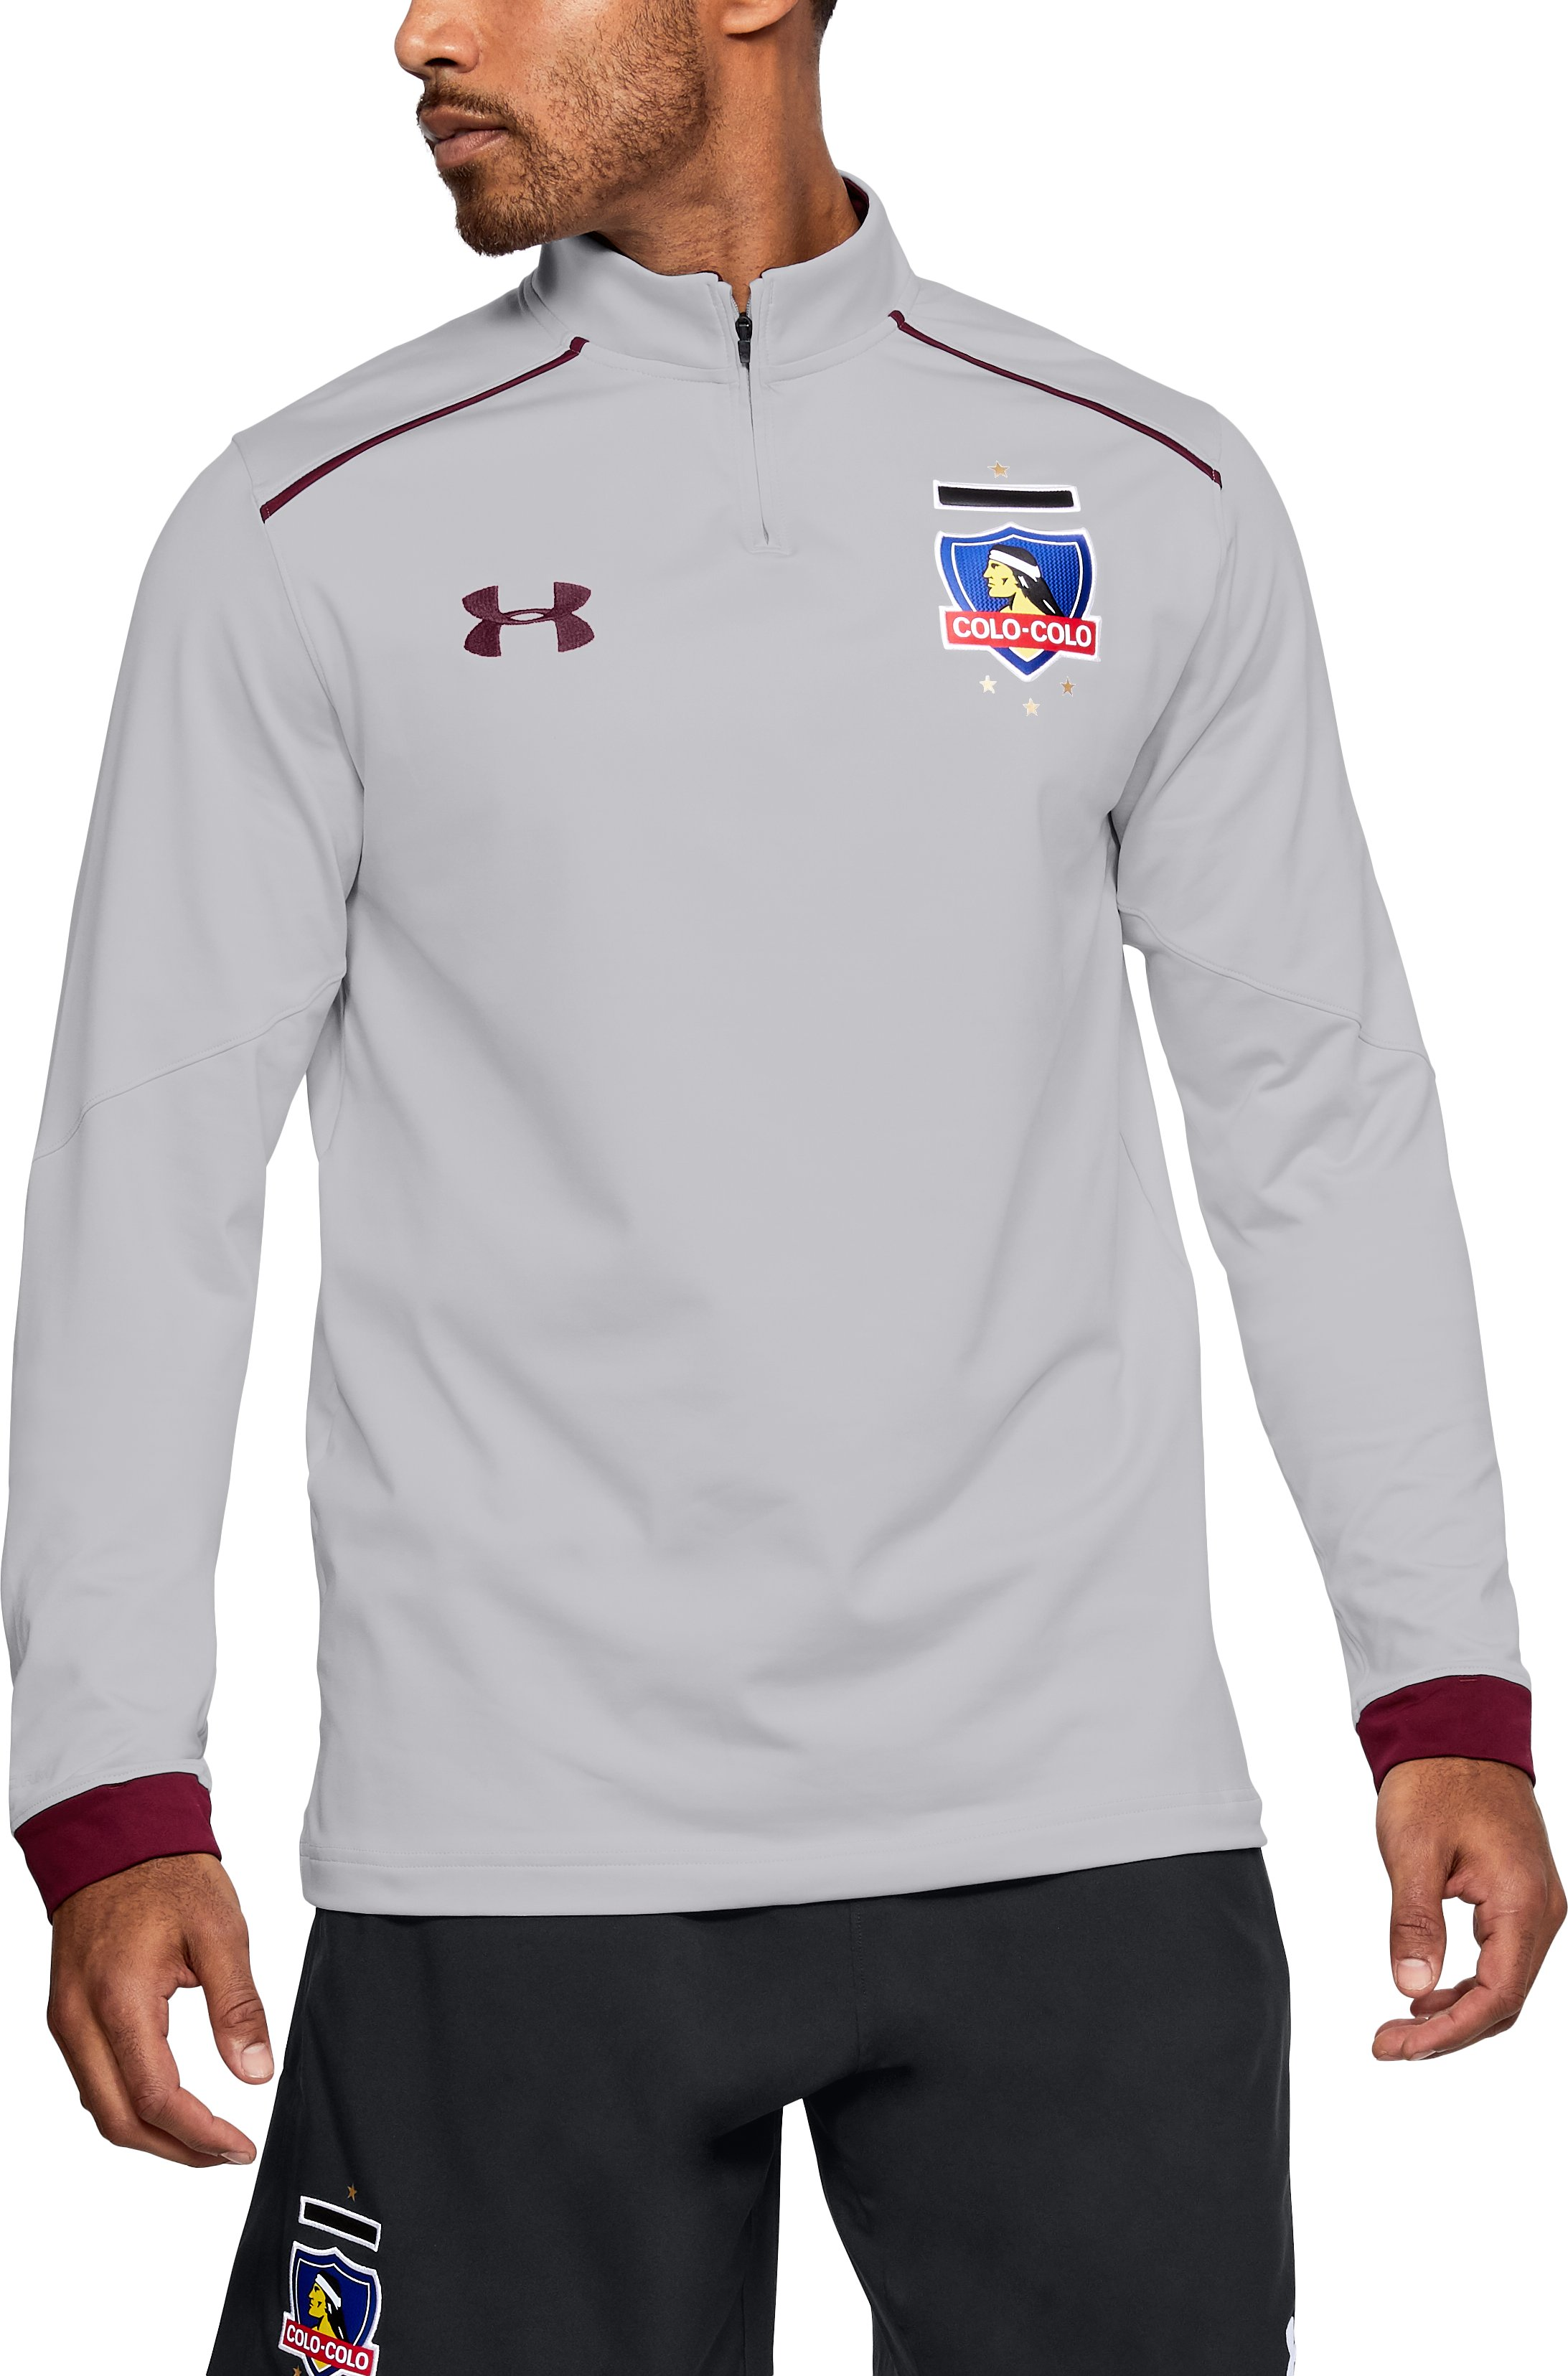 Men's Colo-Colo ¼ Zip Training Top 1 Color $51.00